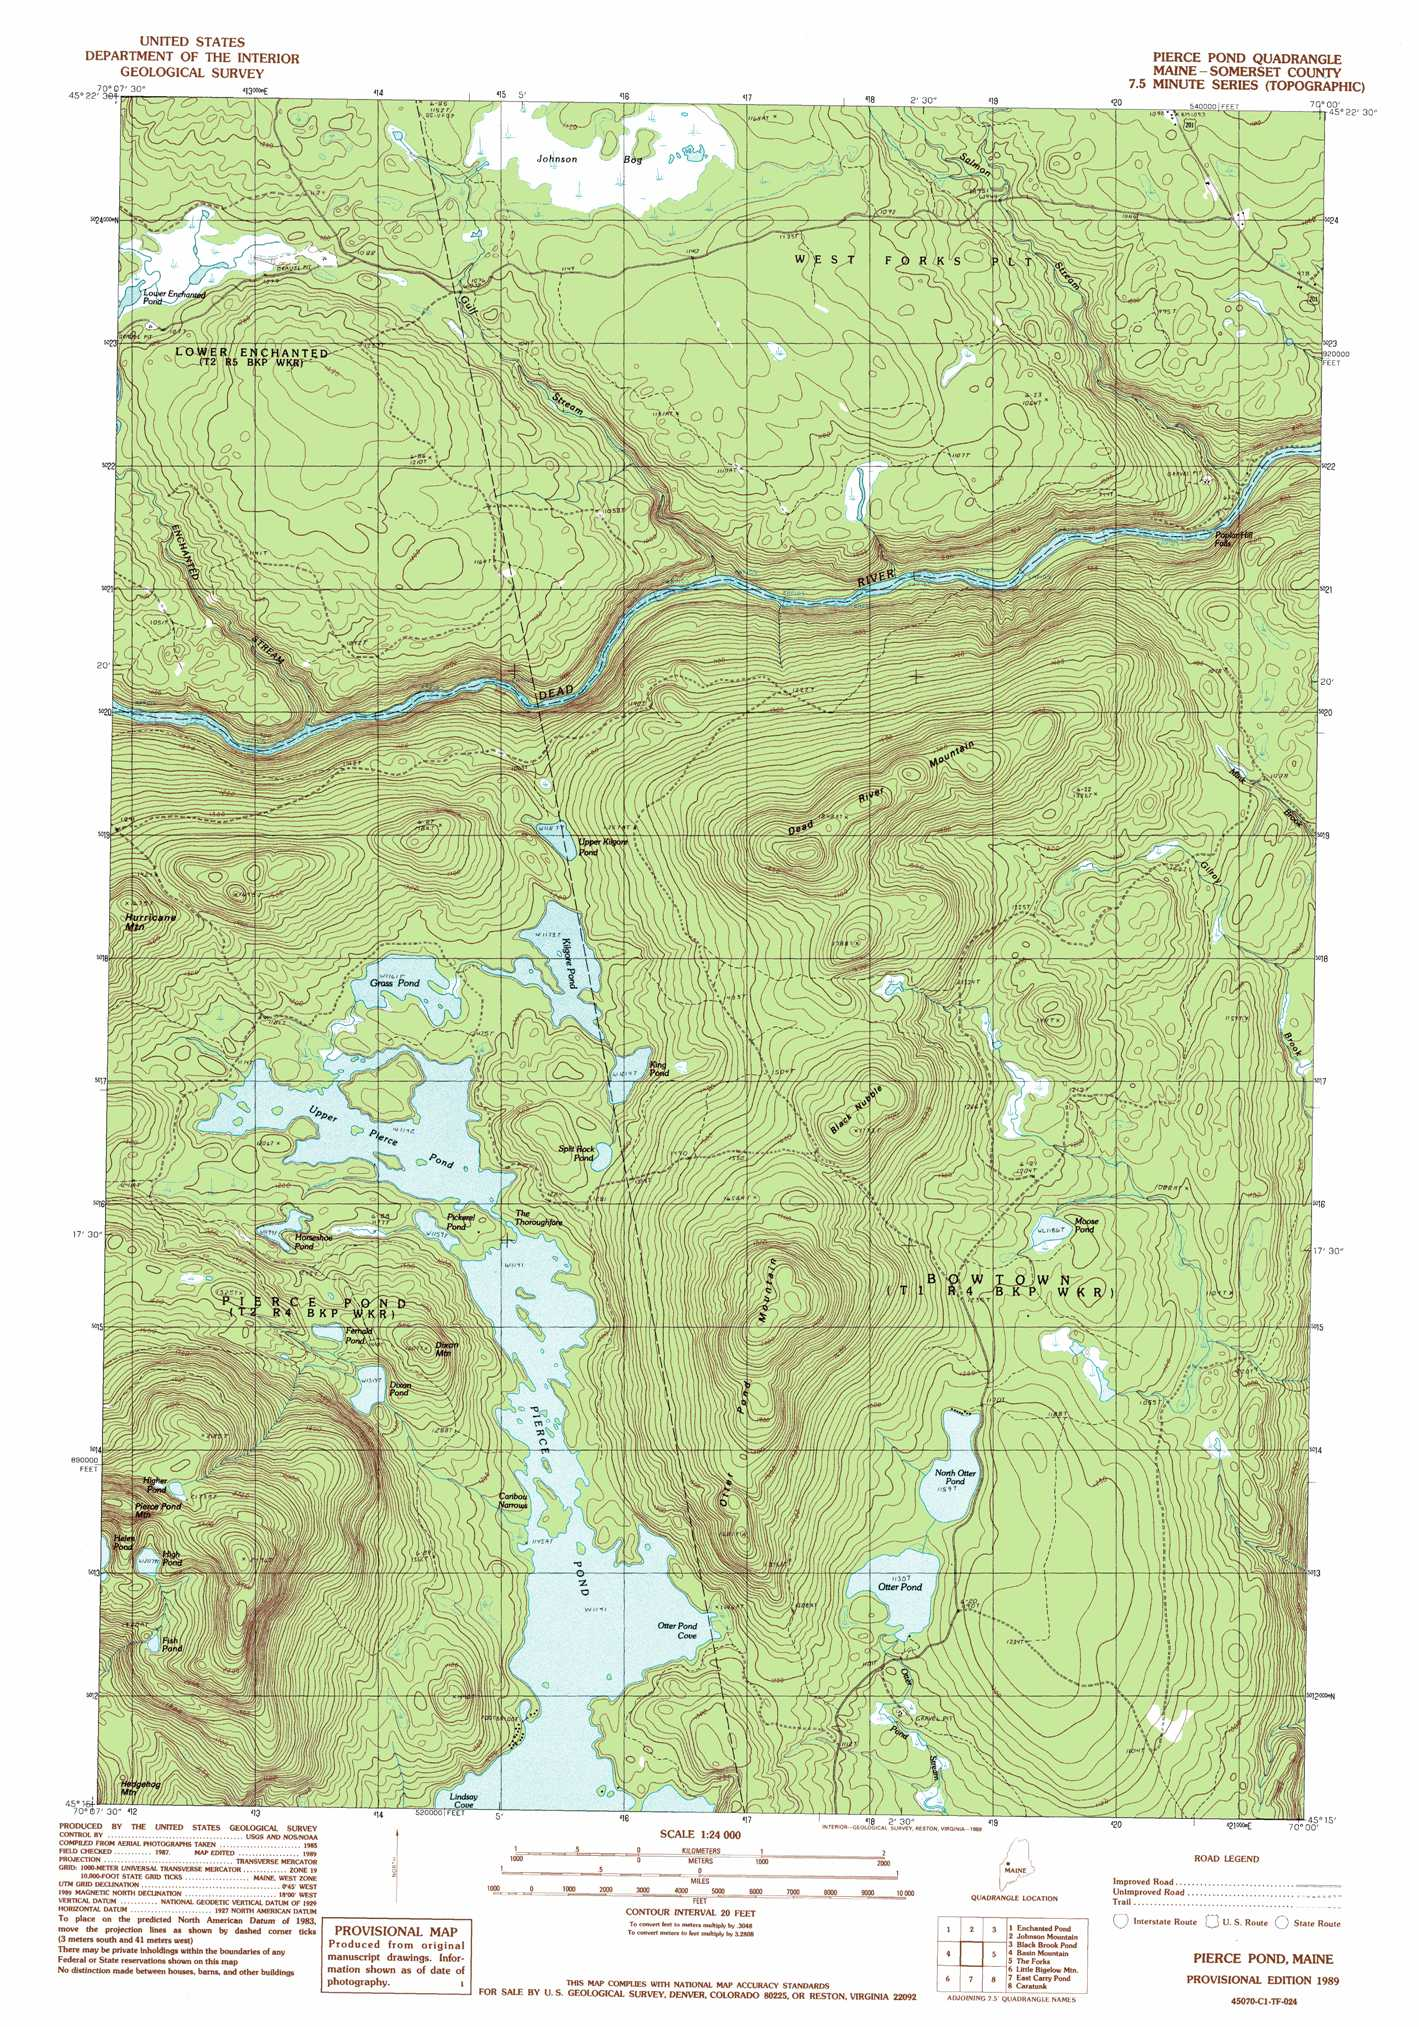 Pierce Pond Topographic Map Me Usgs Topo Quad 45070c1